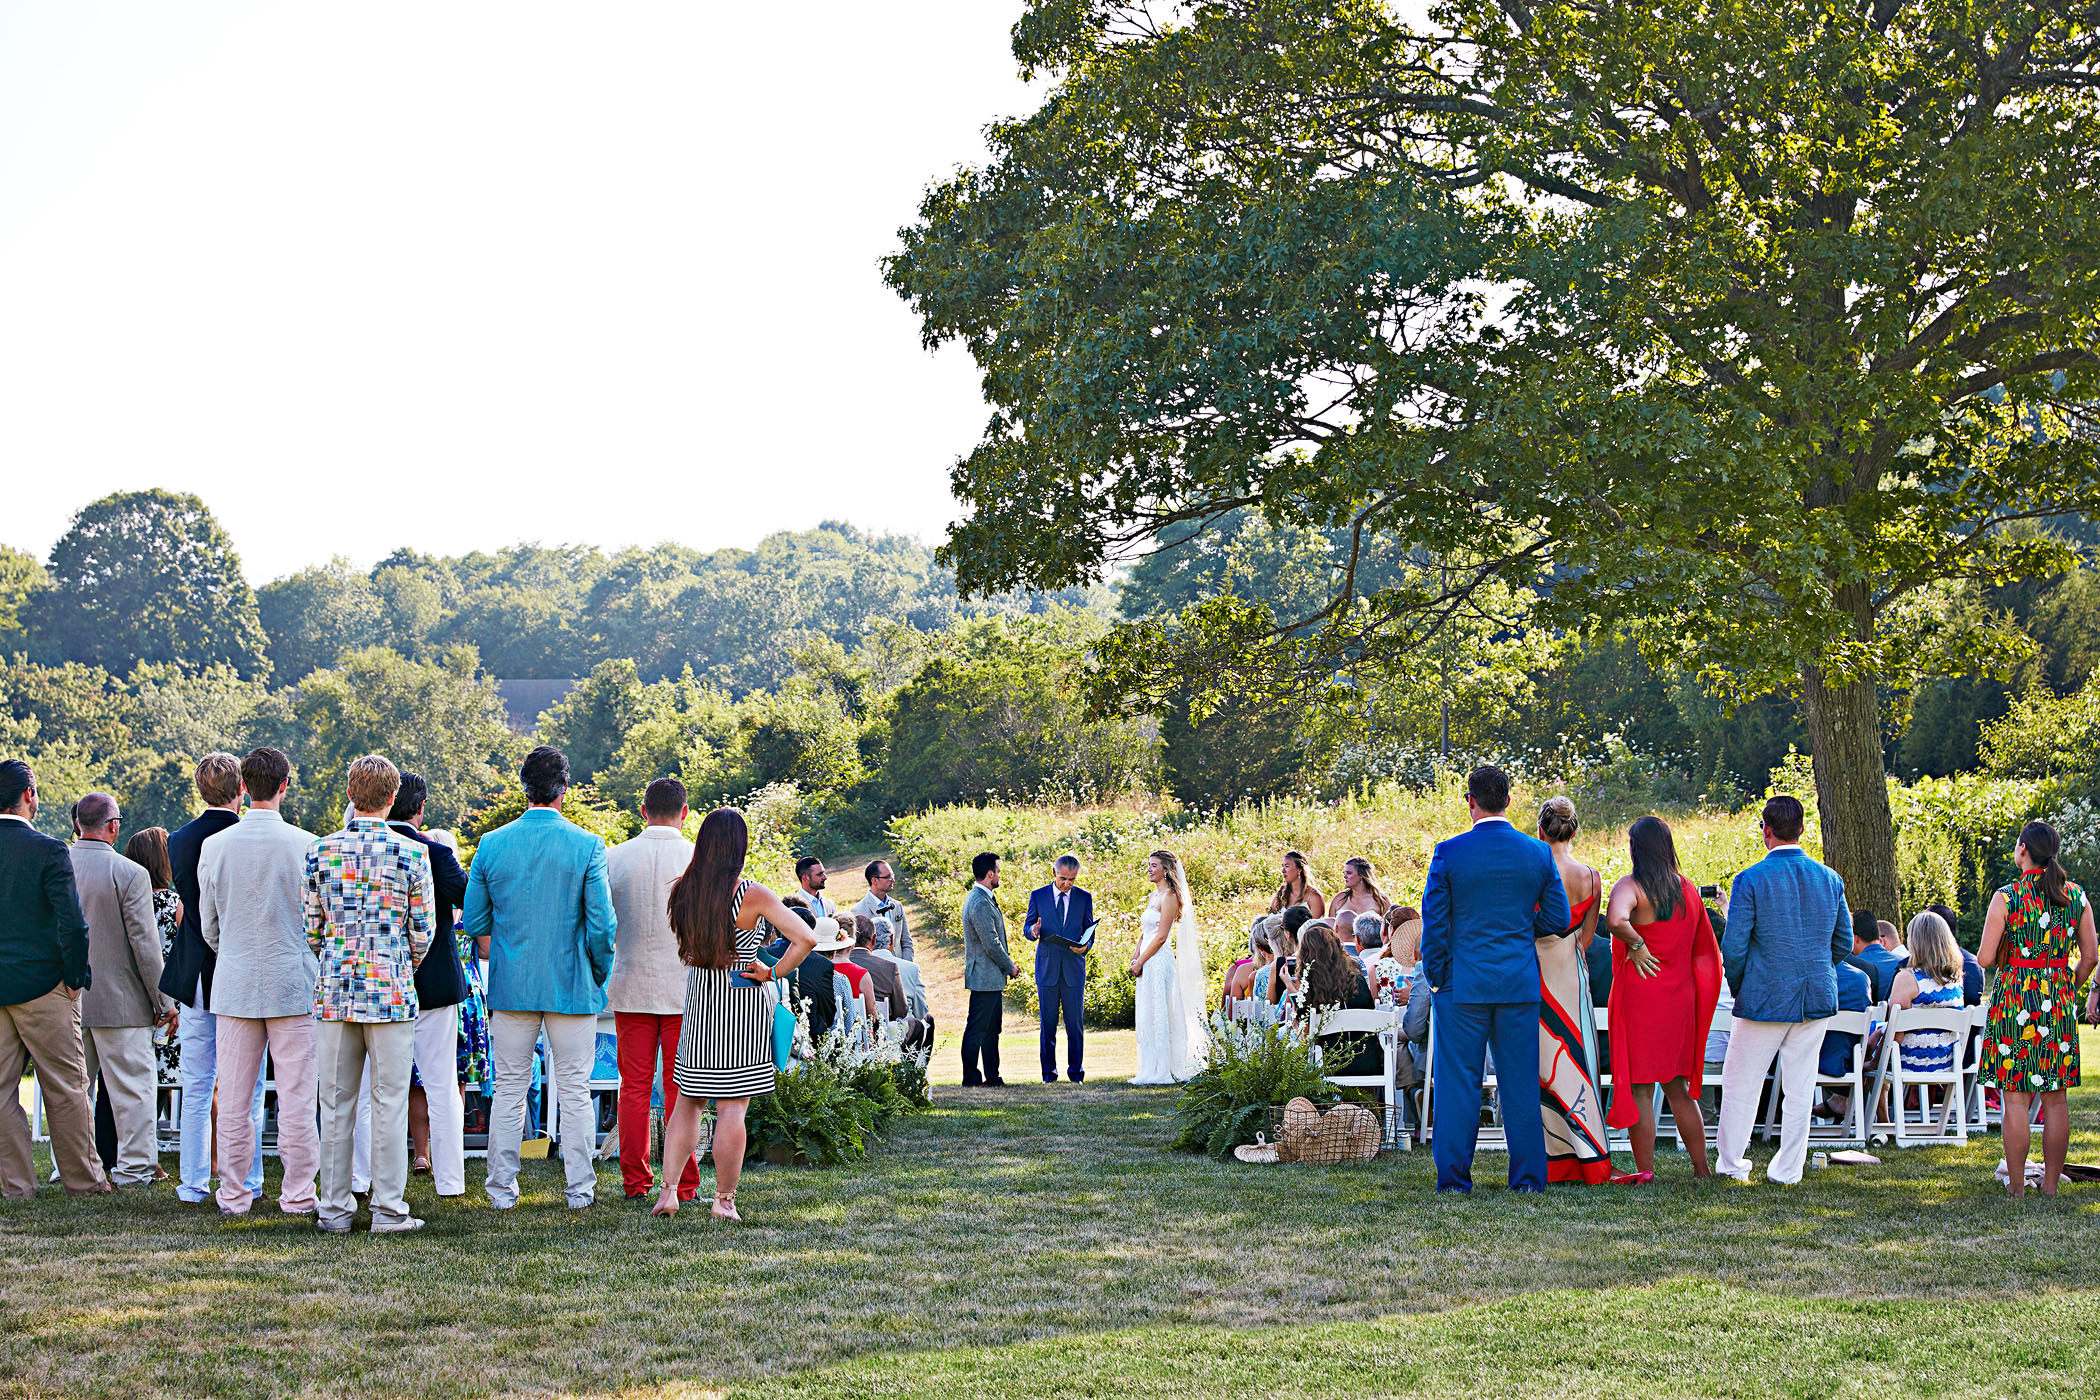 wedding ceremony outdoors